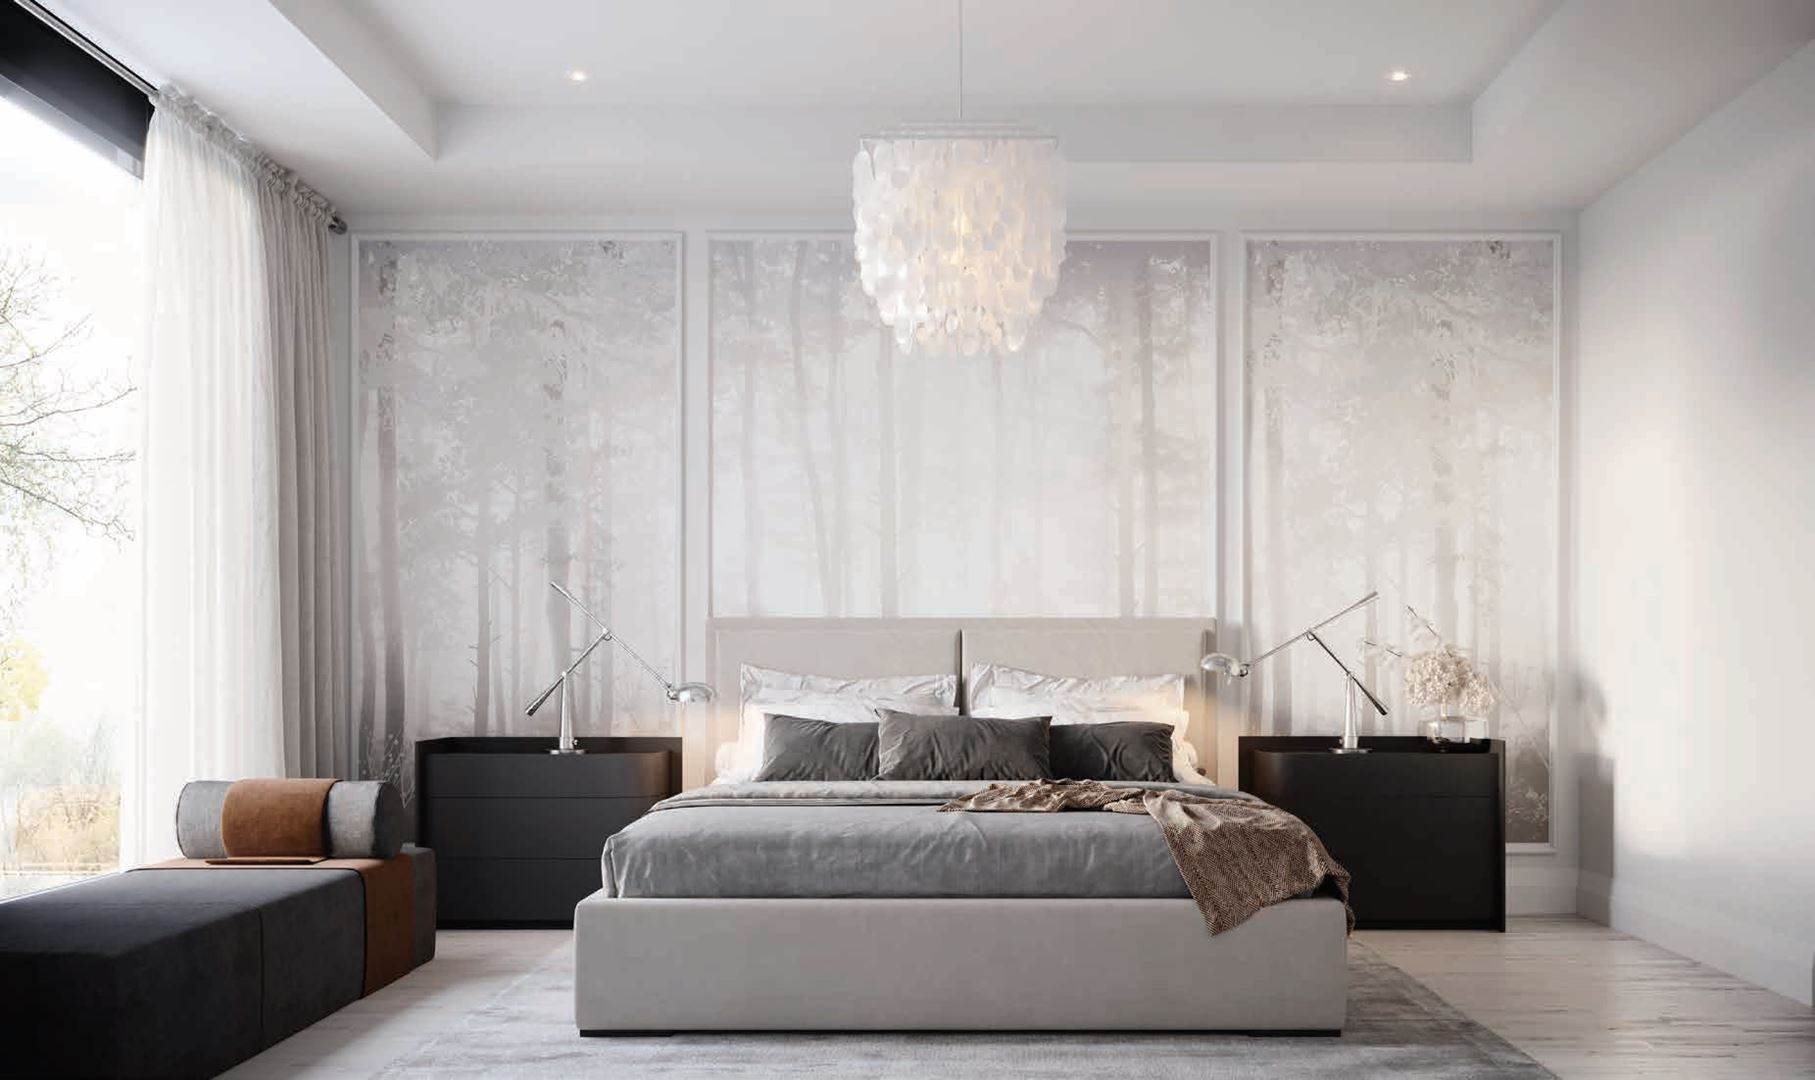 2021_01_12_04_53_16_savileontheroe_blockdevelopments_rendering_bedroom